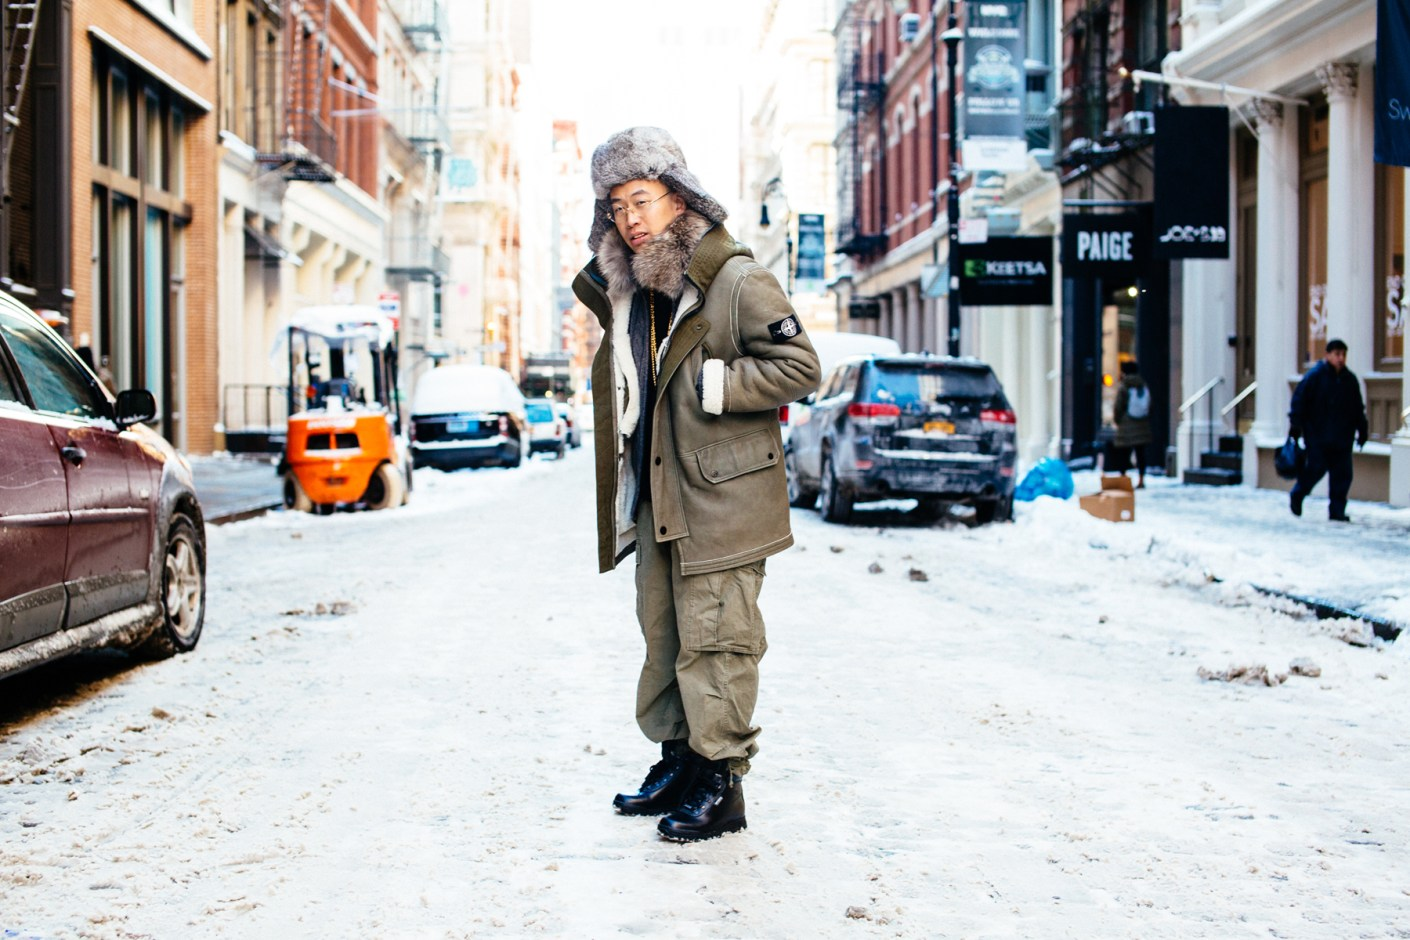 Image of Streetsnaps: Kevin Leong